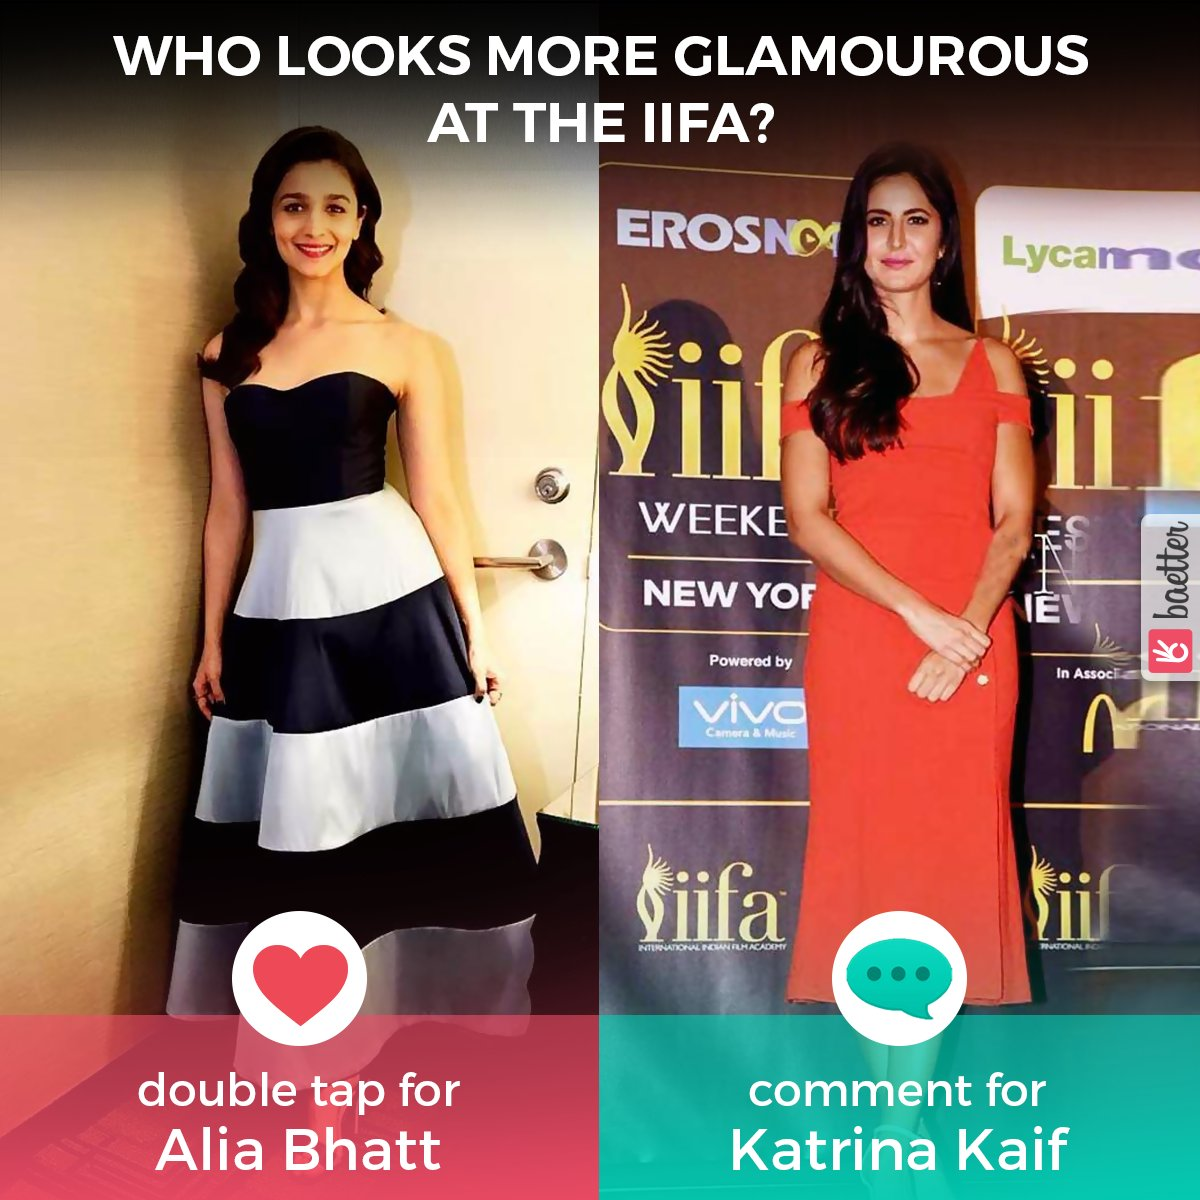 Whose looks more glamourous at the IIFA #AliaBhatt or #KatrinaKaif? Vote on Baetter App:  http:// bit.ly/2tb3ZkL  &nbsp;  <br>http://pic.twitter.com/UlfICGyjYg